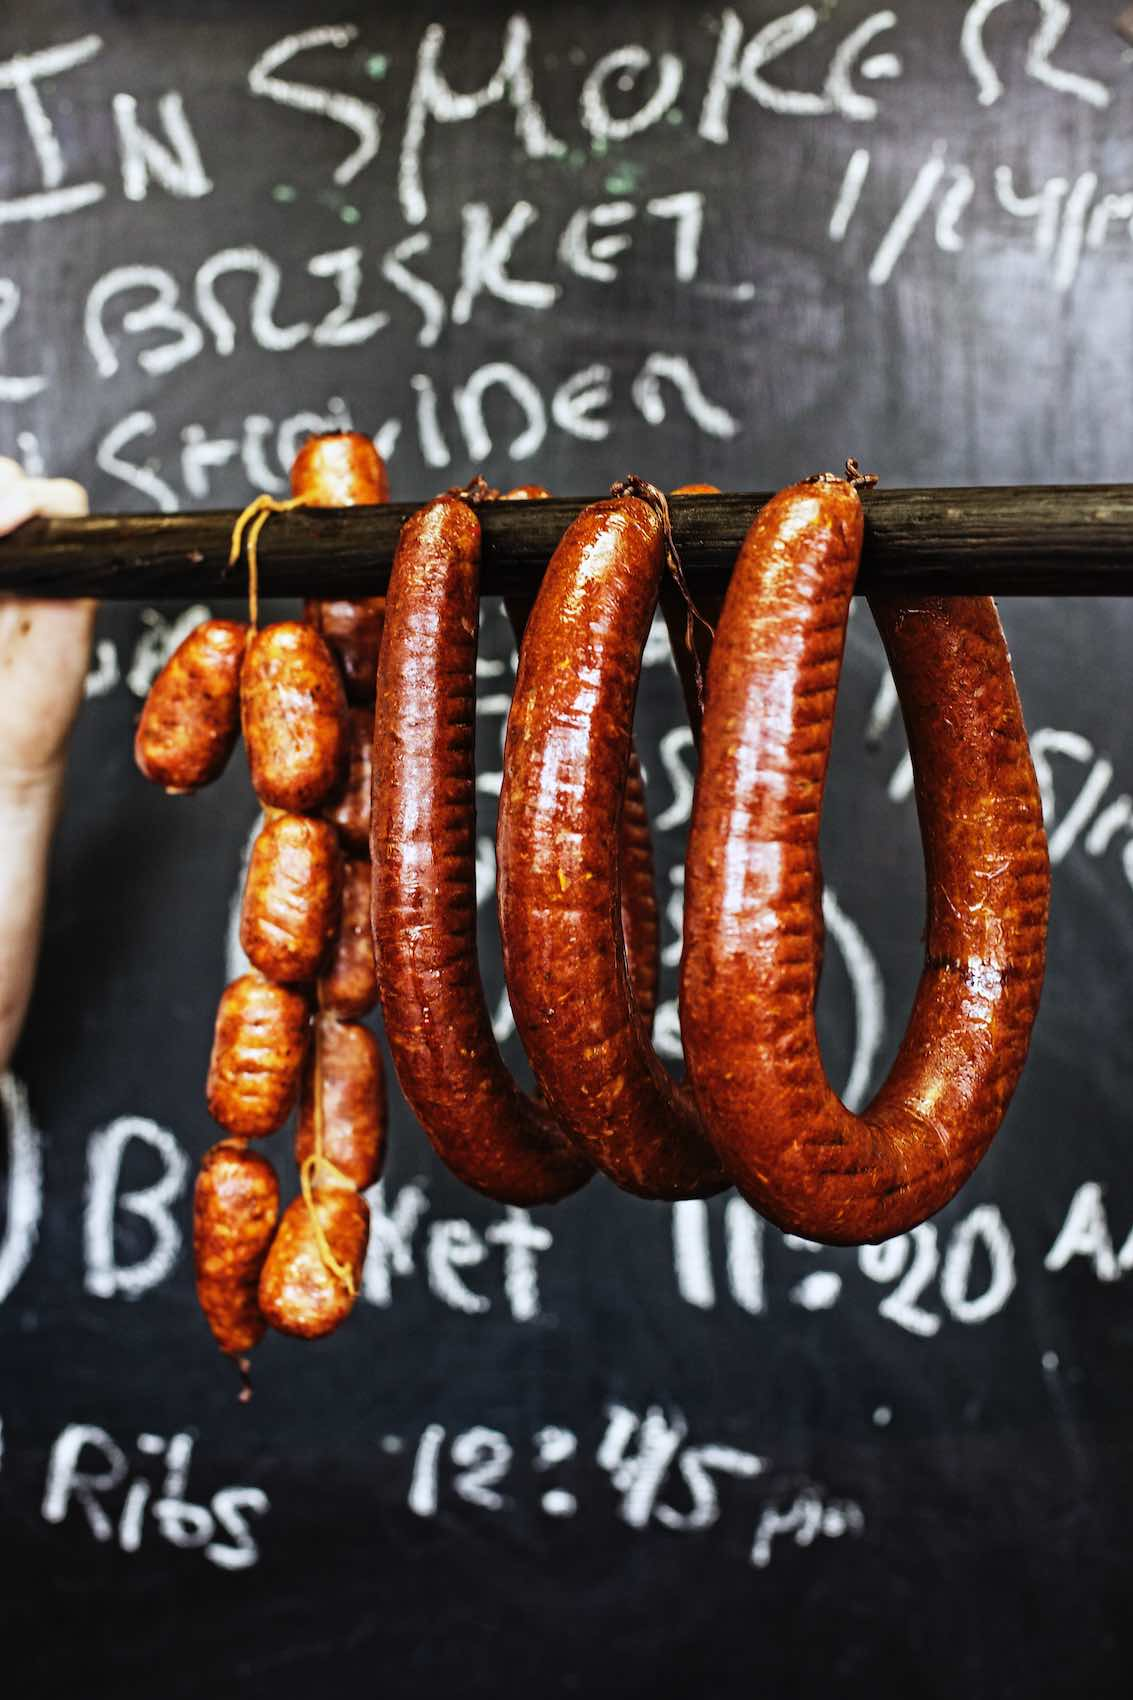 Jody Horton Photography - Smoked sausages and chalkboard.